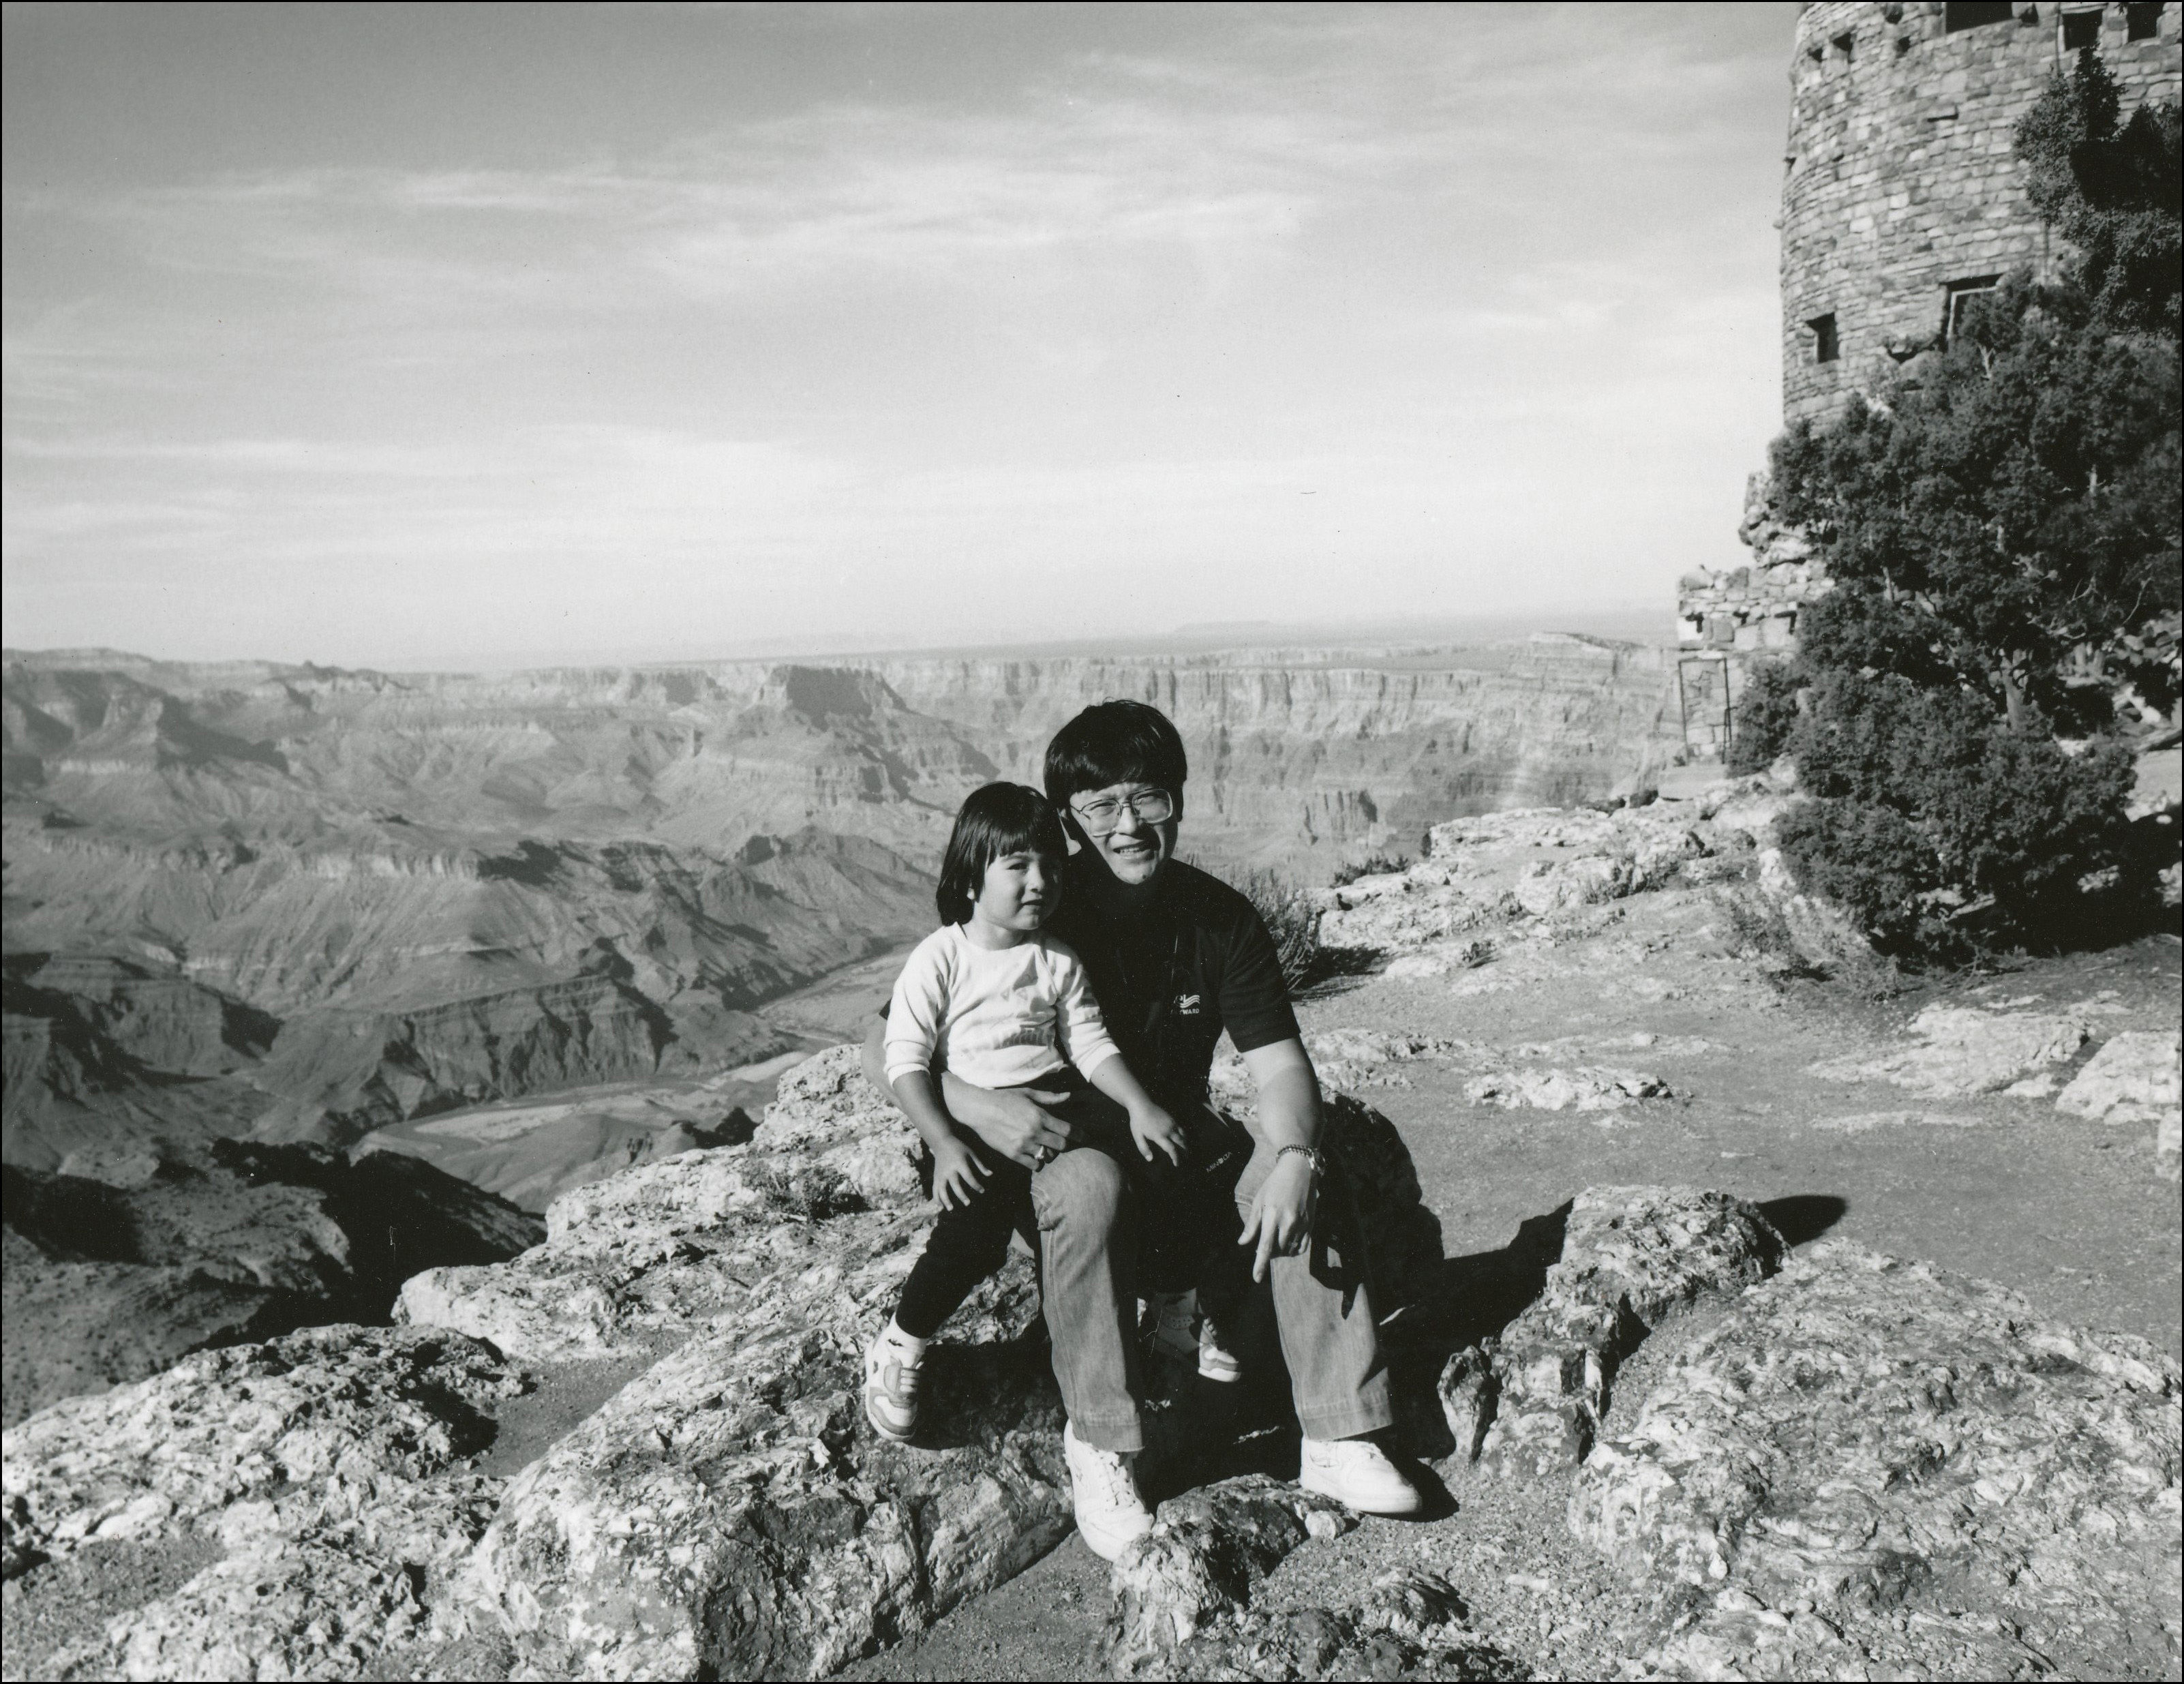 A father and his youg daugher sitting on a rock in front of the Grand Canyon